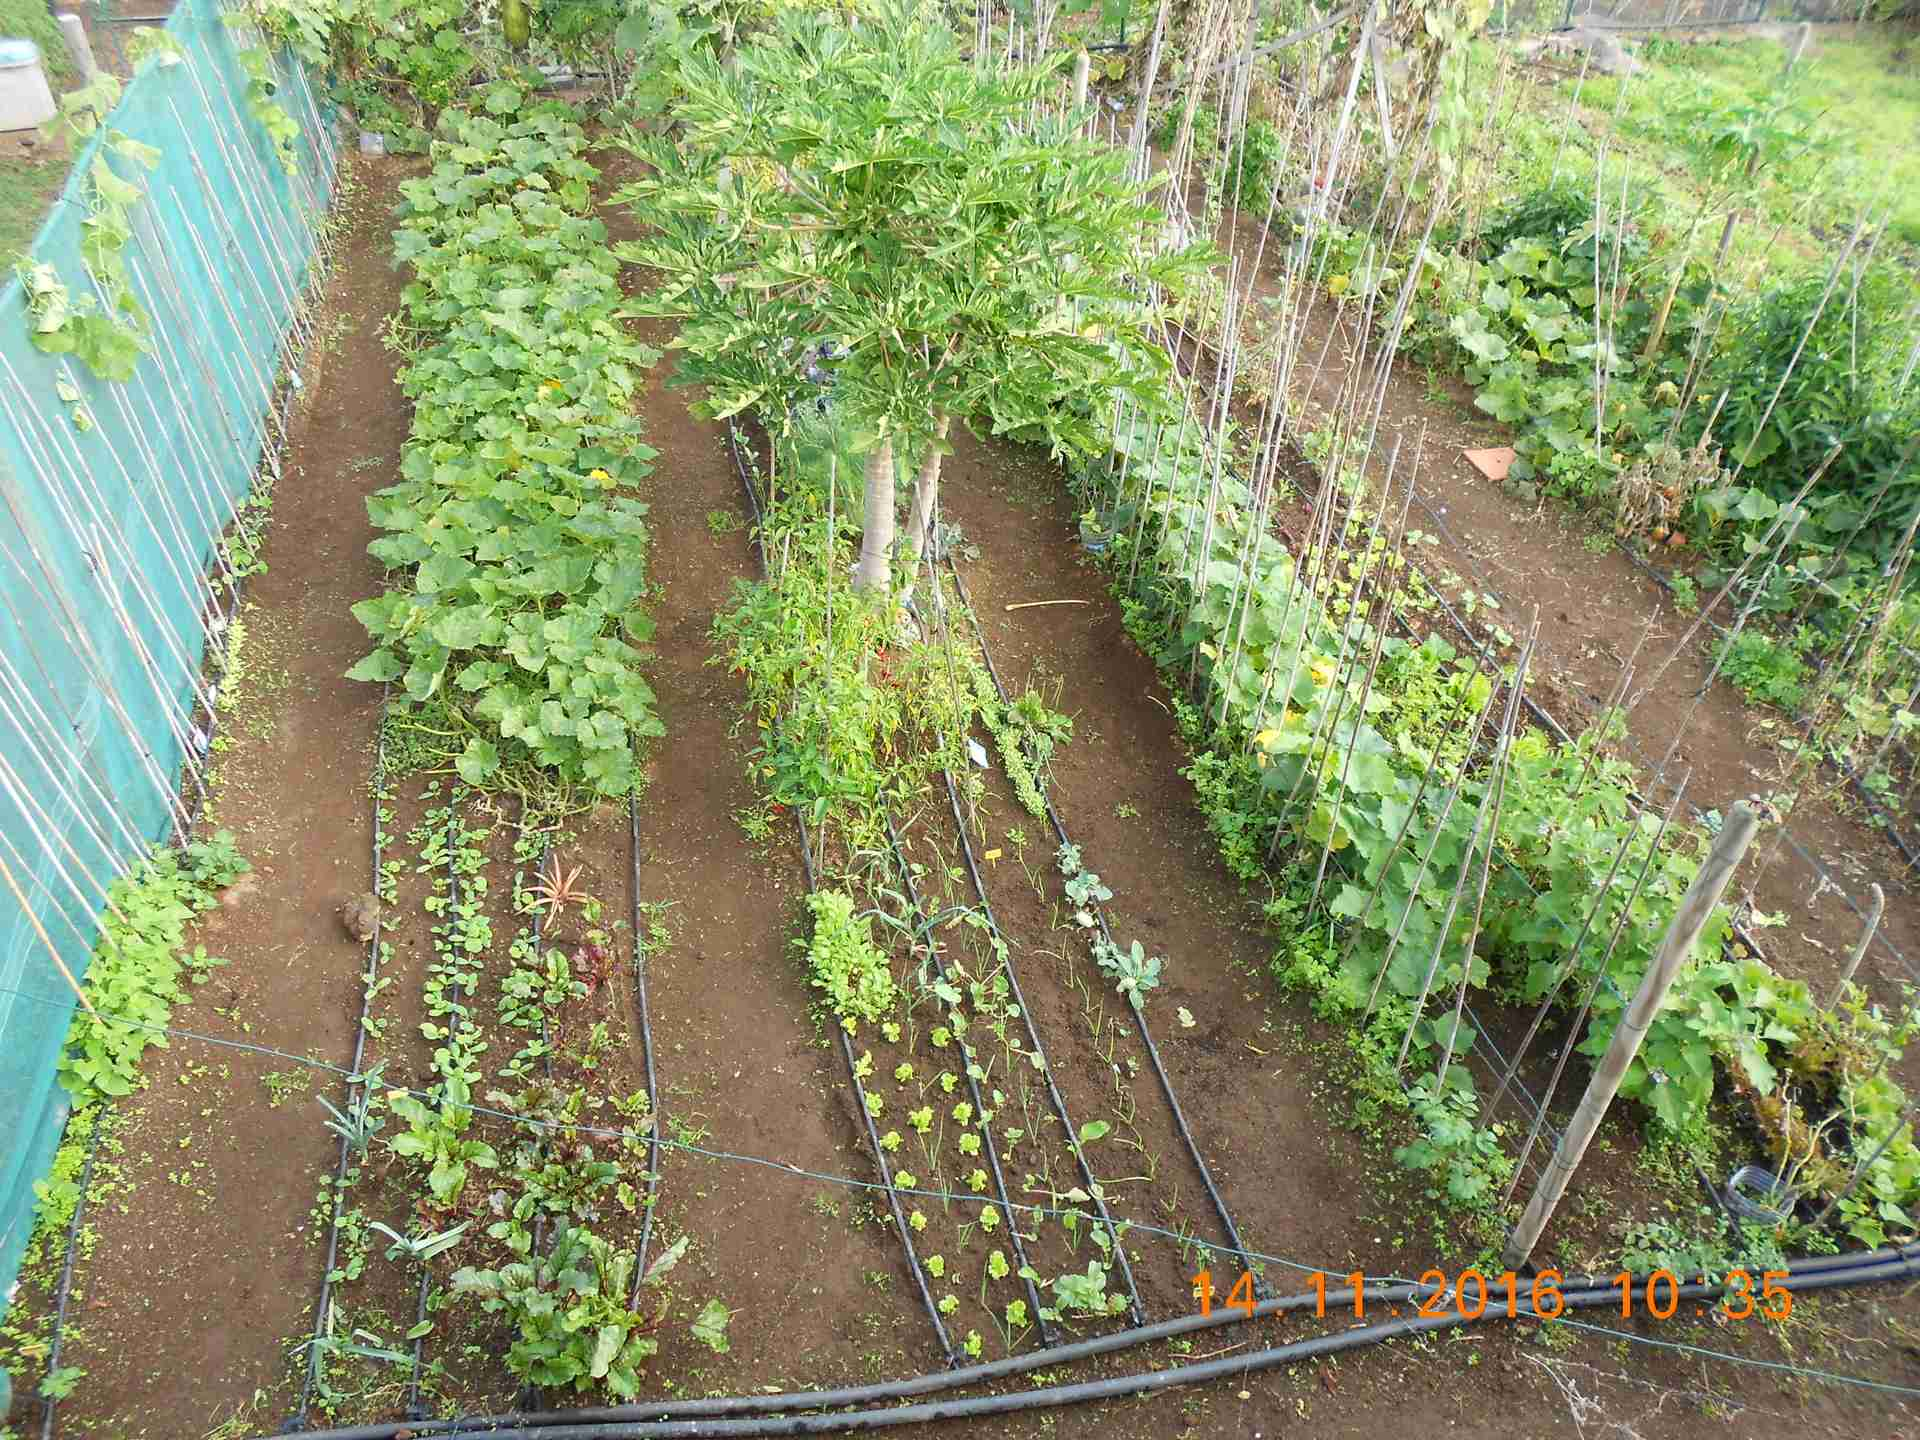 Allotments for rent finca ecologica la sabinita for Allotment tools for sale